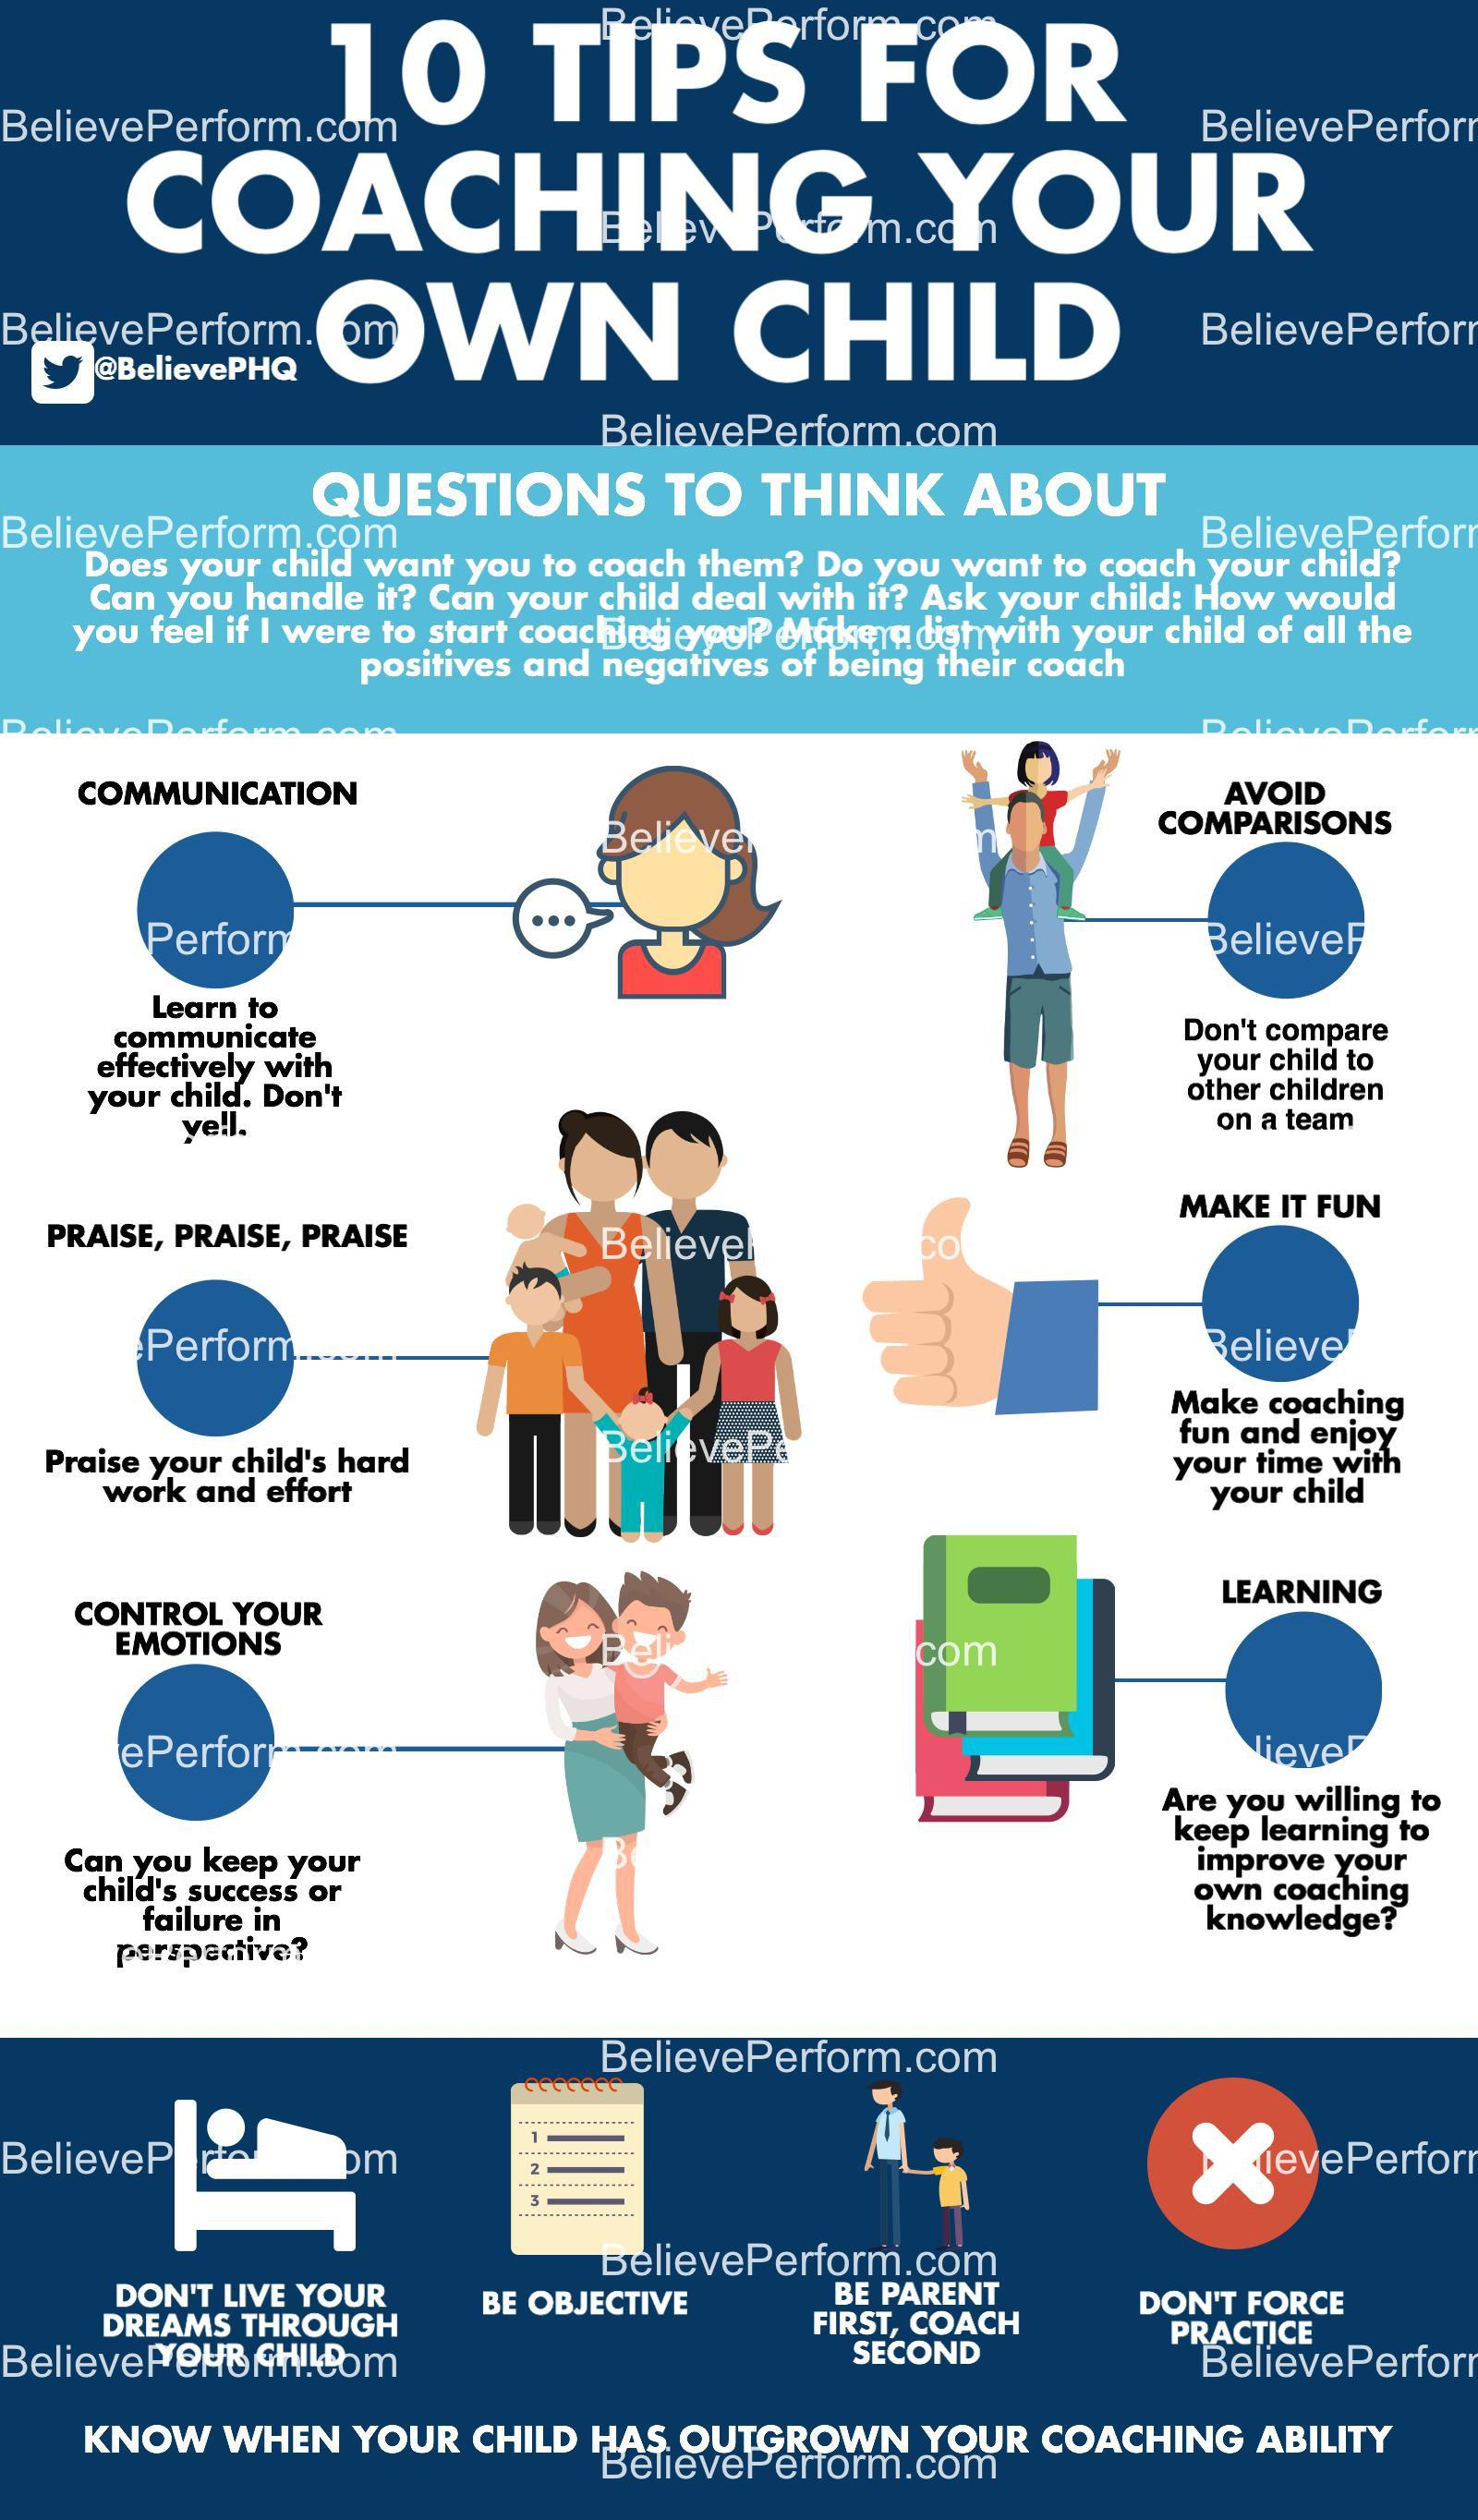 10 tips for coaching your own child